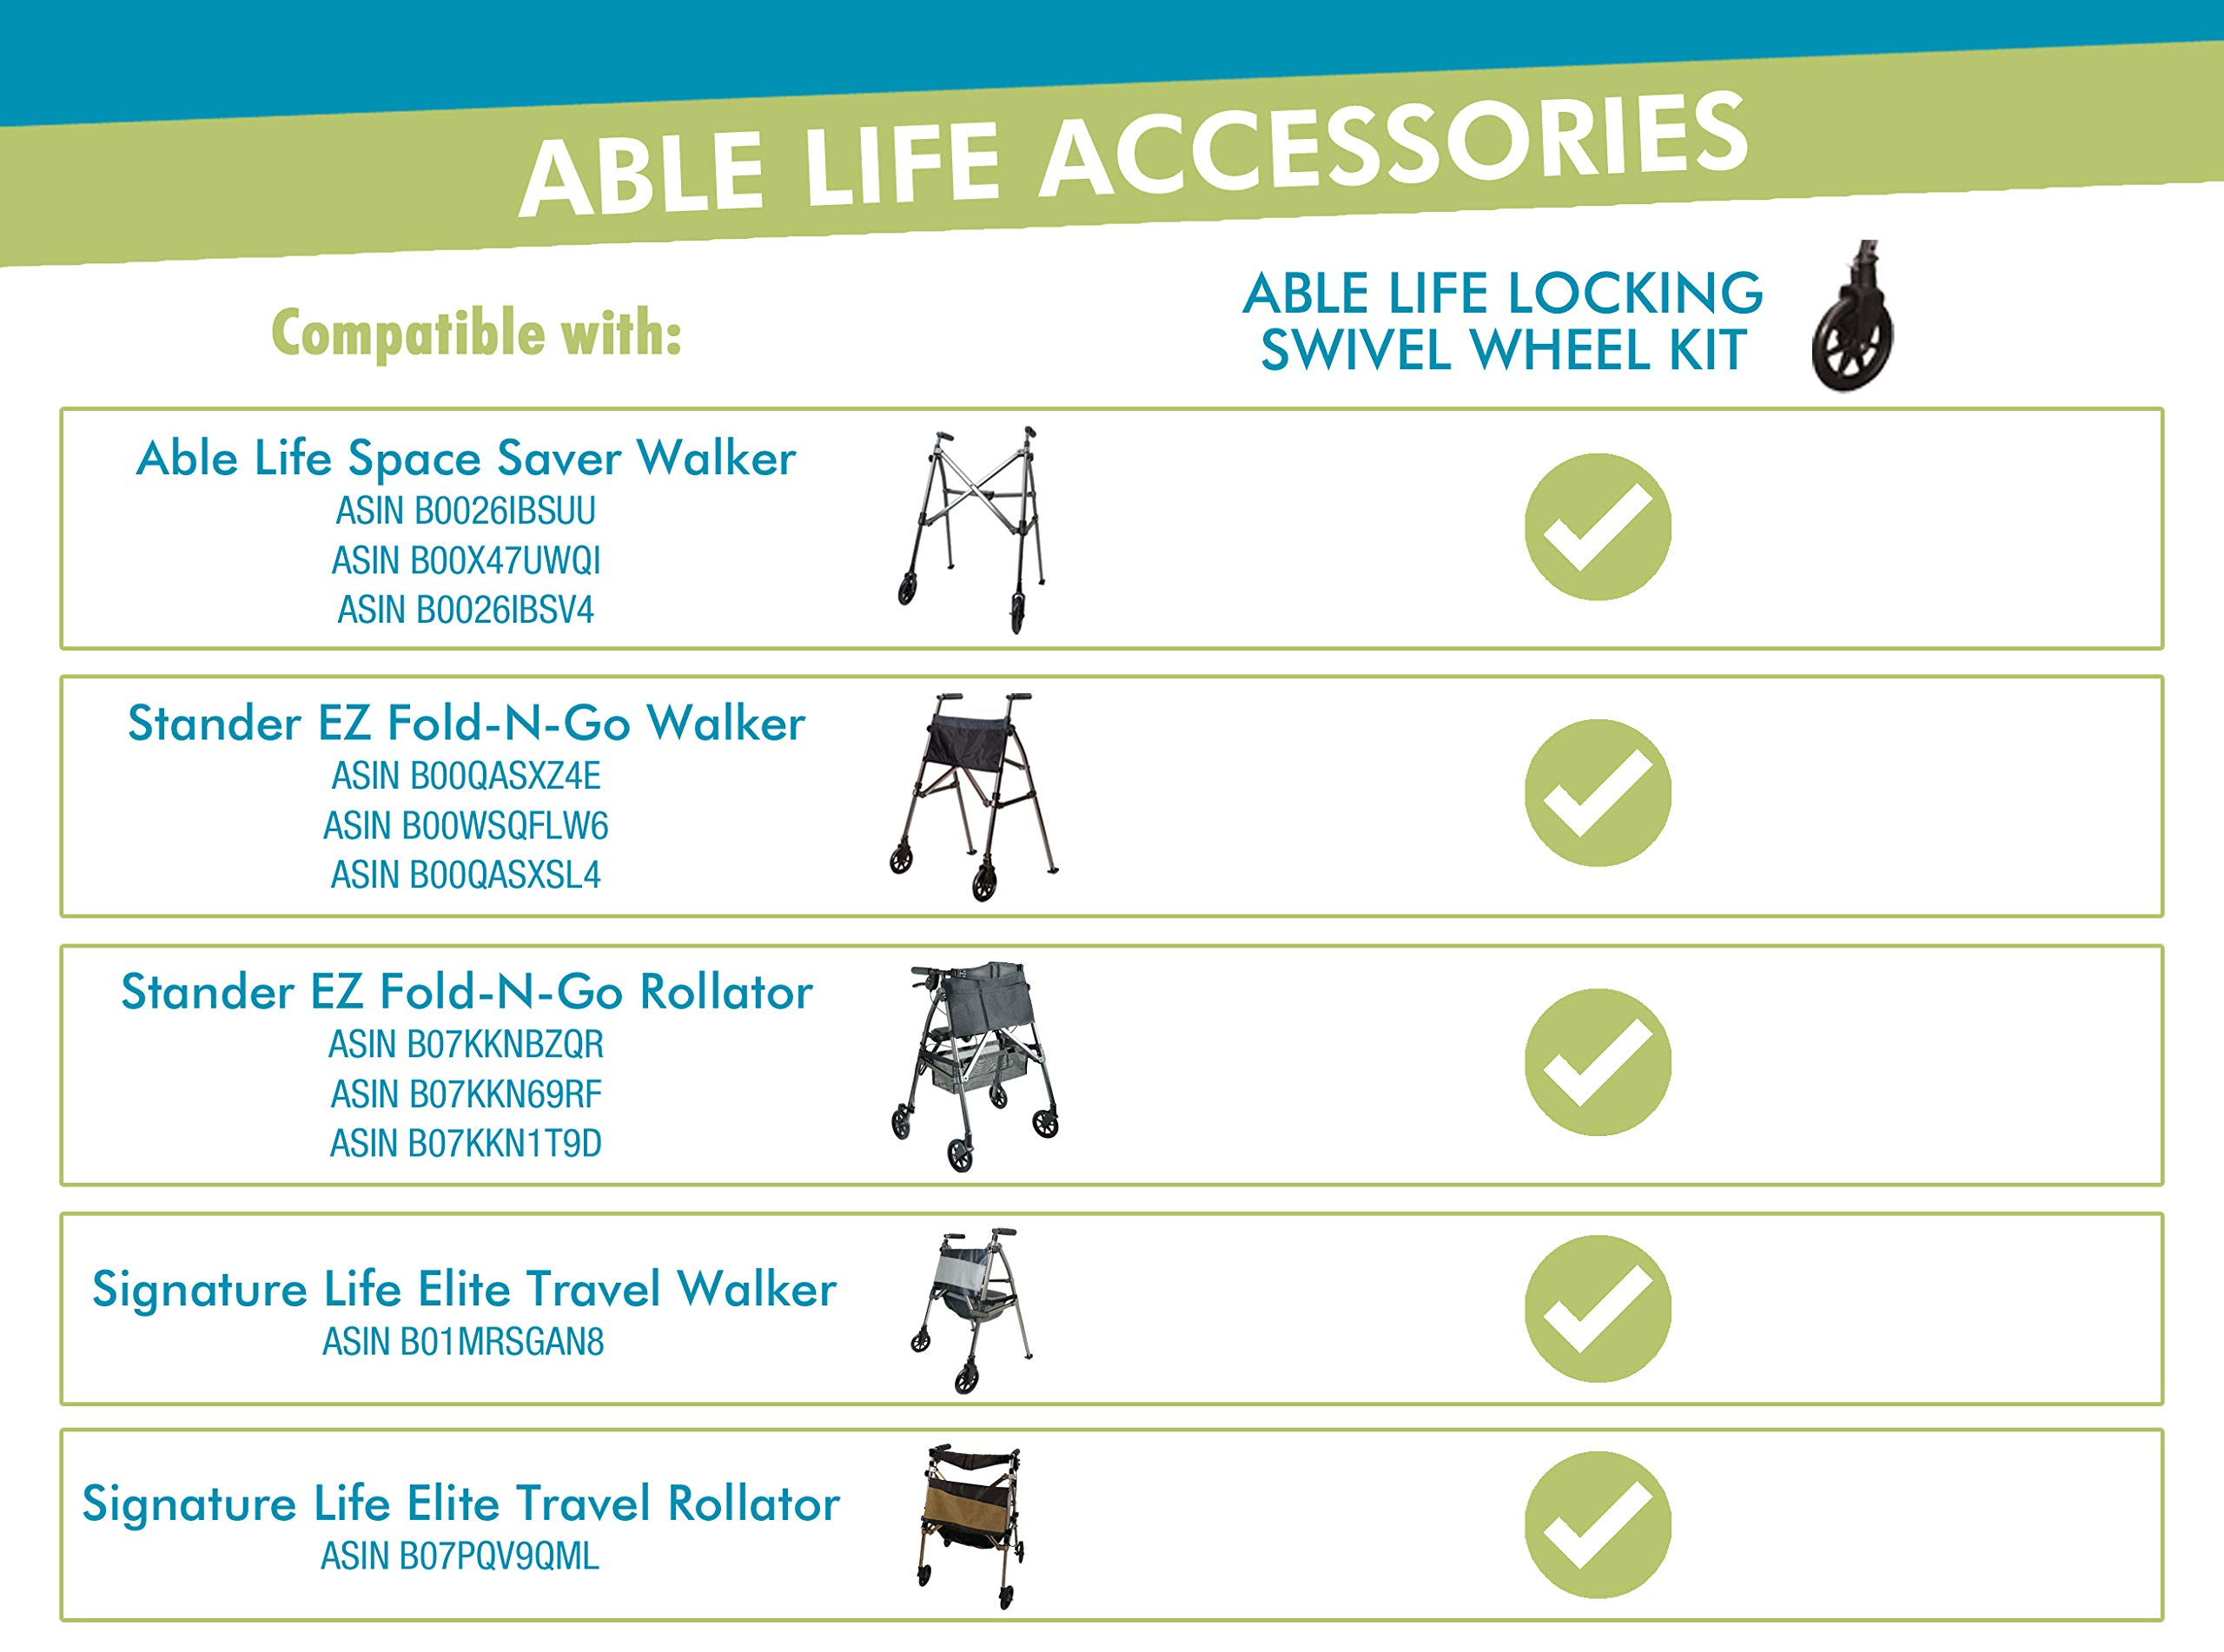 Able Life 2Piece Locking Swivel Wheel Kit, Black, 1.6 Lb by Able Life